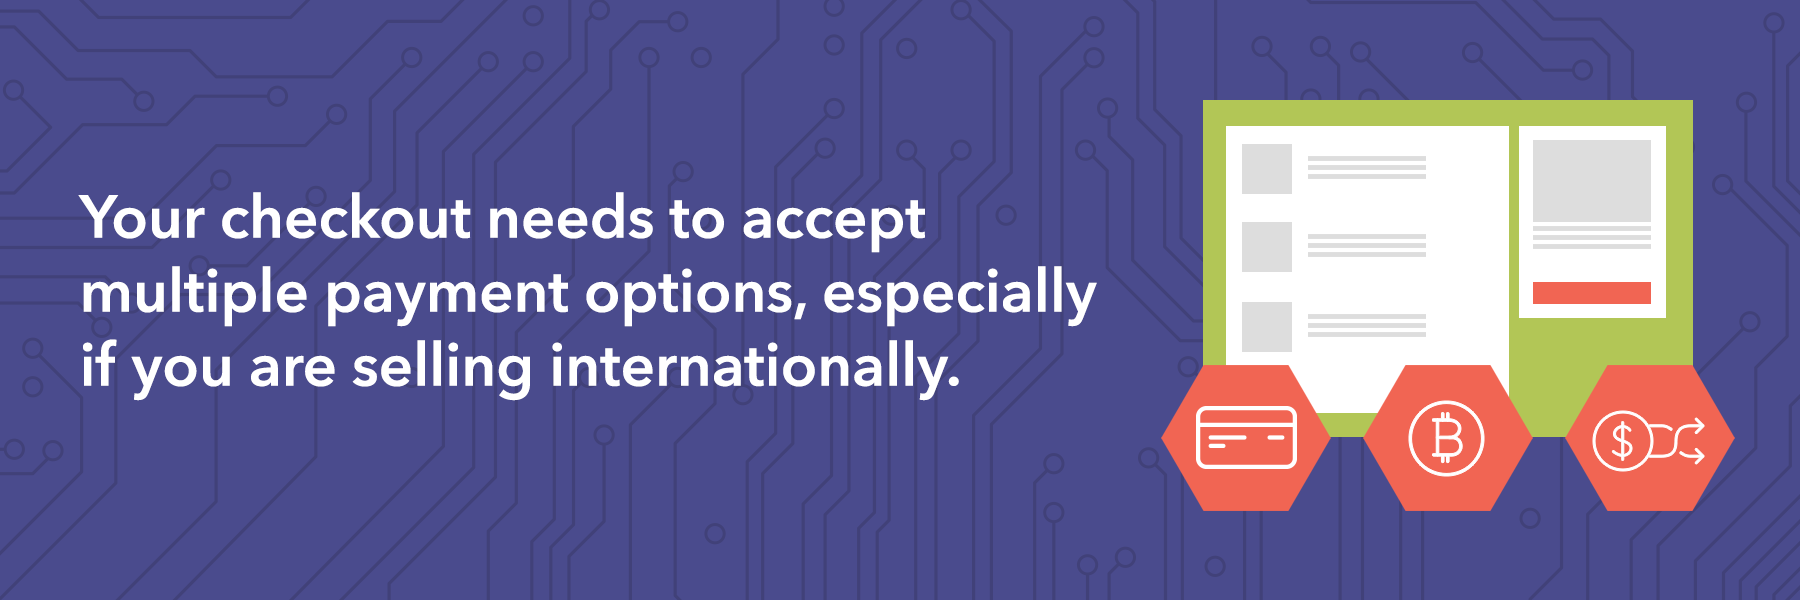 Your checkout needs to accept multiple payment options, especially if you are selling internationally.